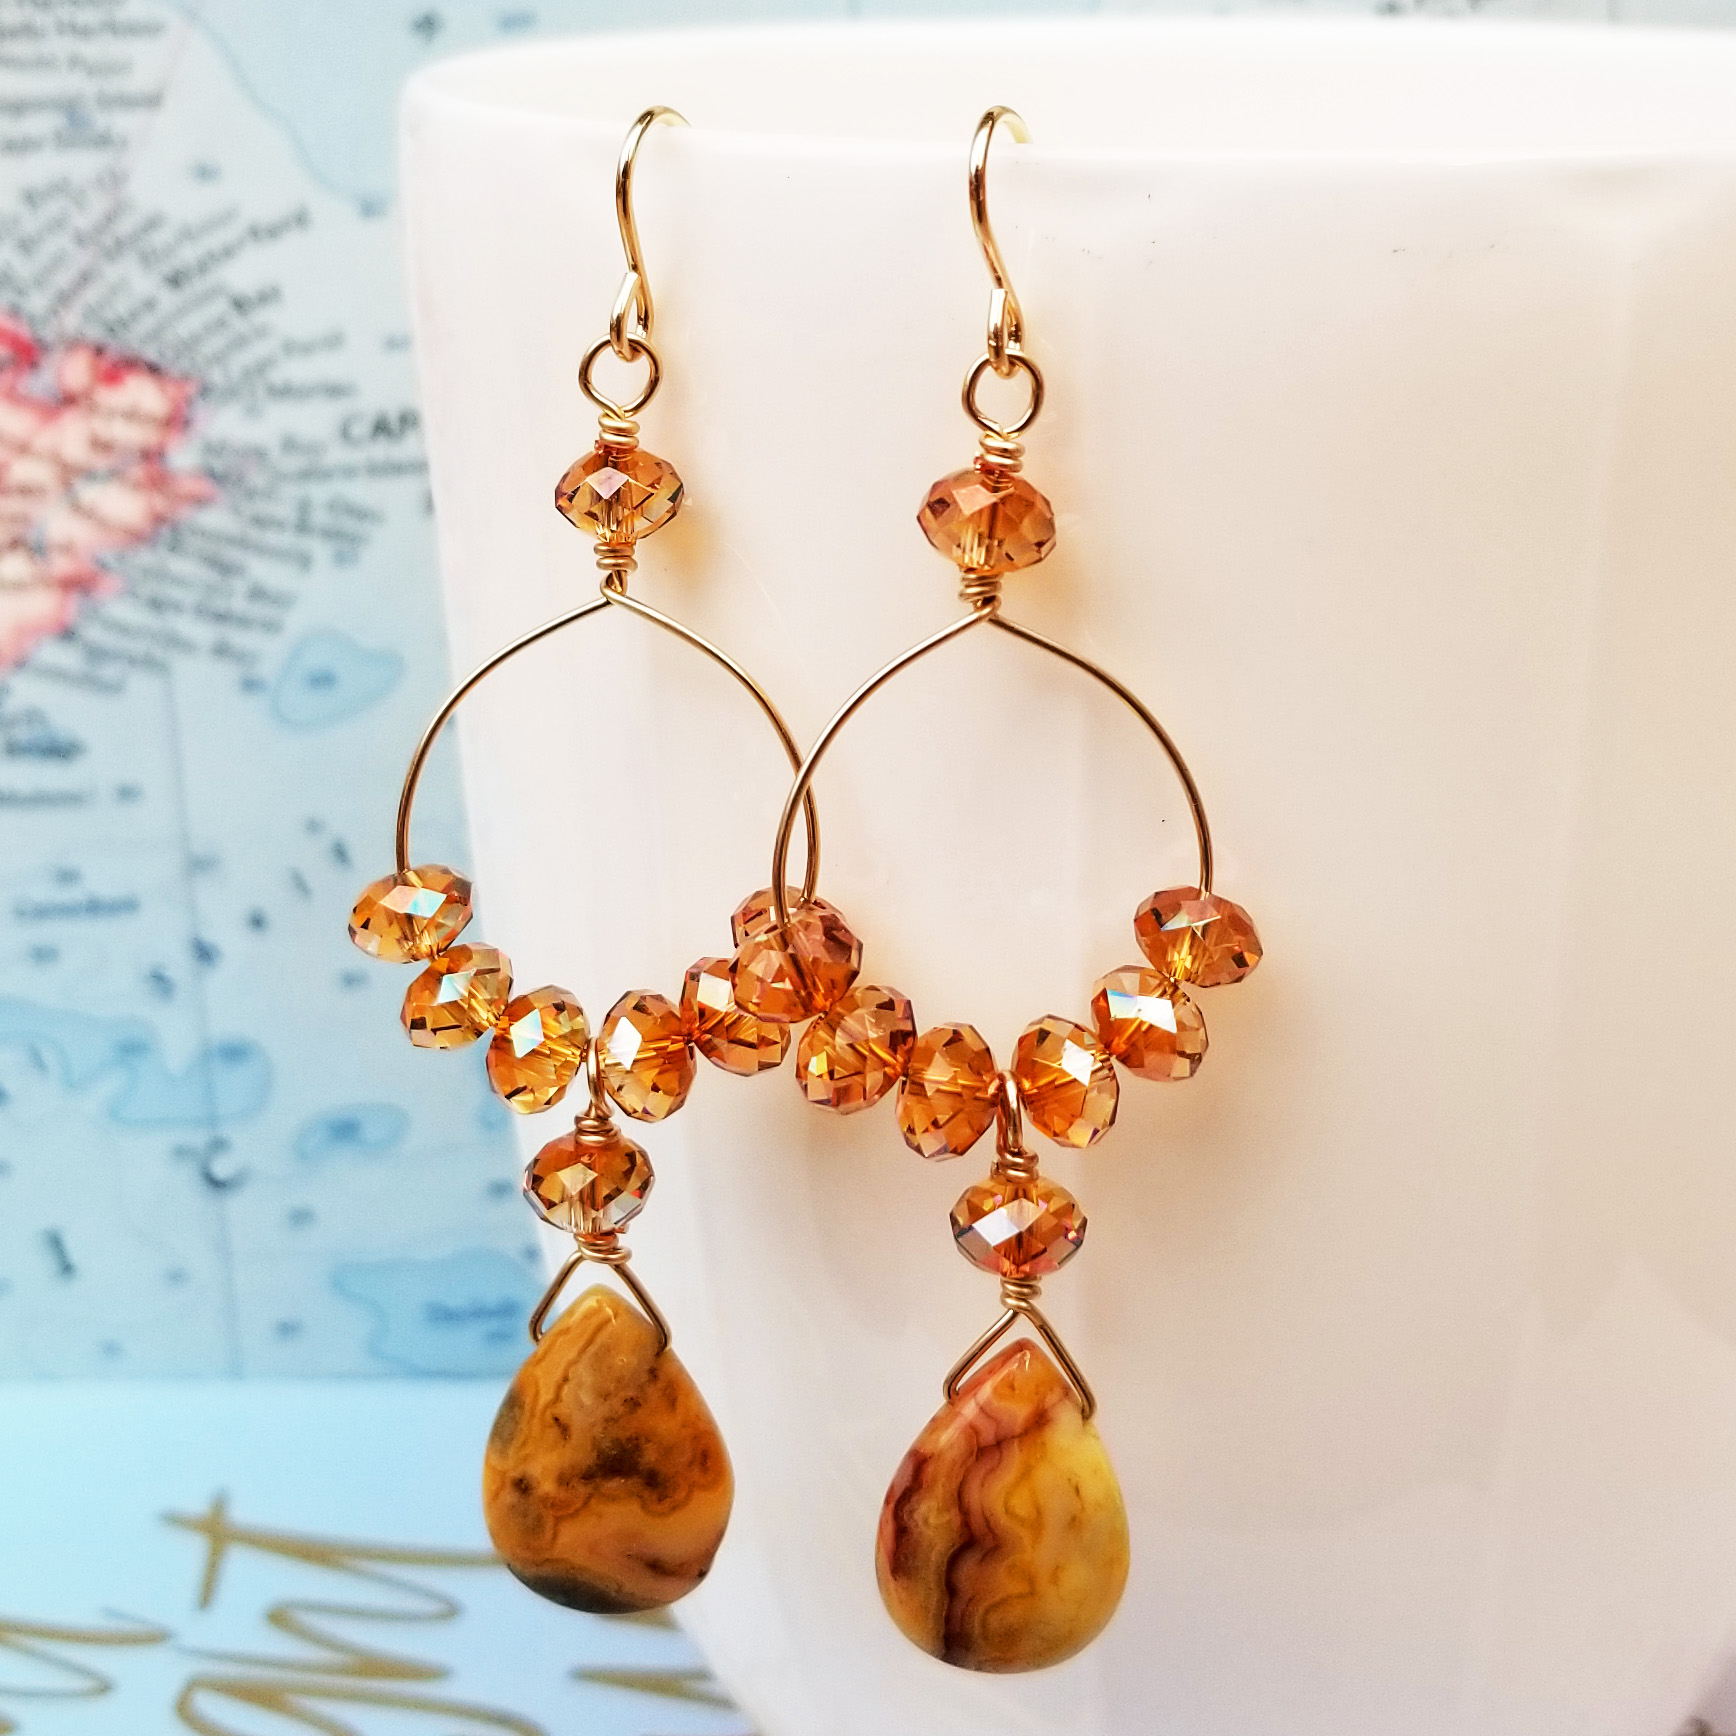 Golden Drops Gold, Crystal and Gemstone Earrings